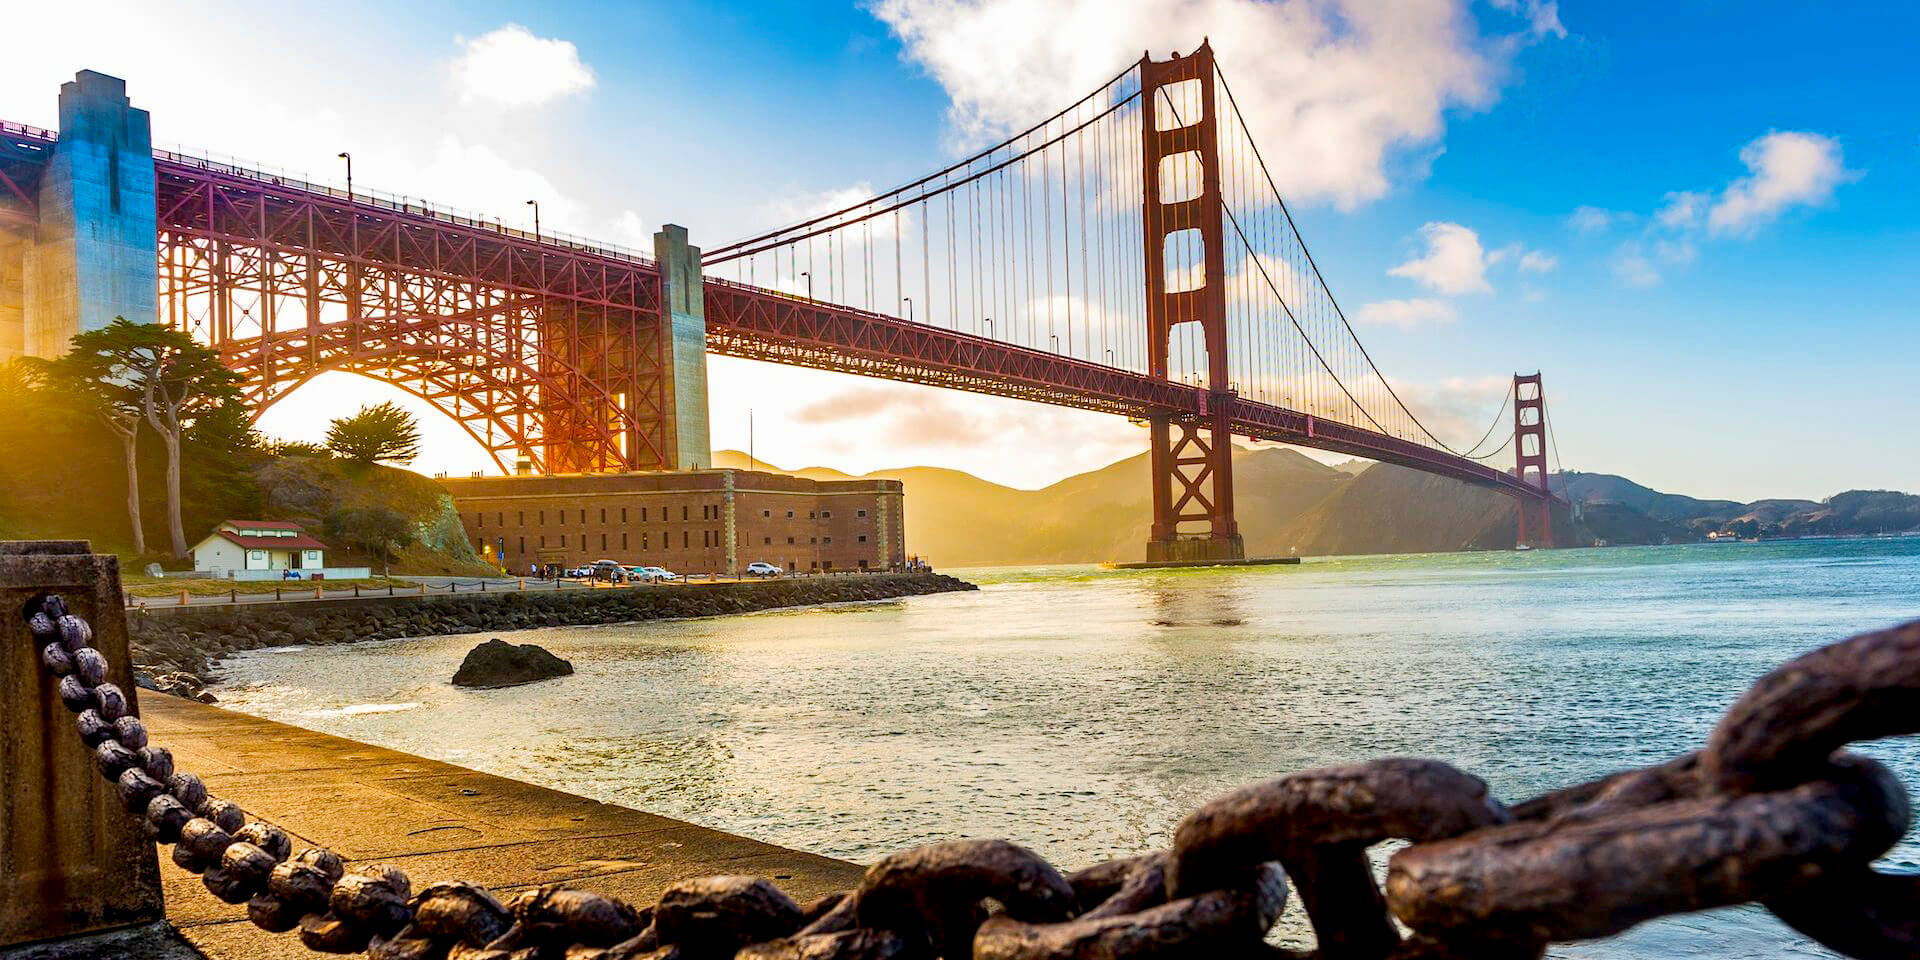 The Golden Gate Bridge used as a slideshow image on the website frontpage.